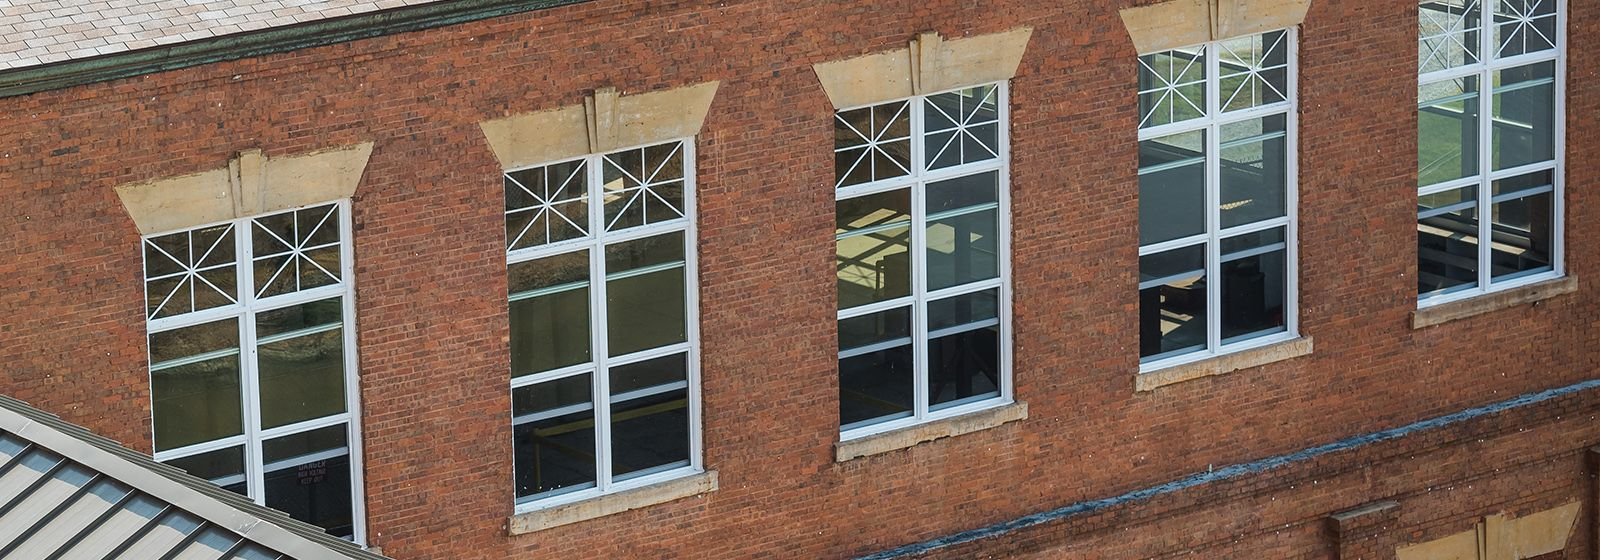 Historic plant gets new windows to the world